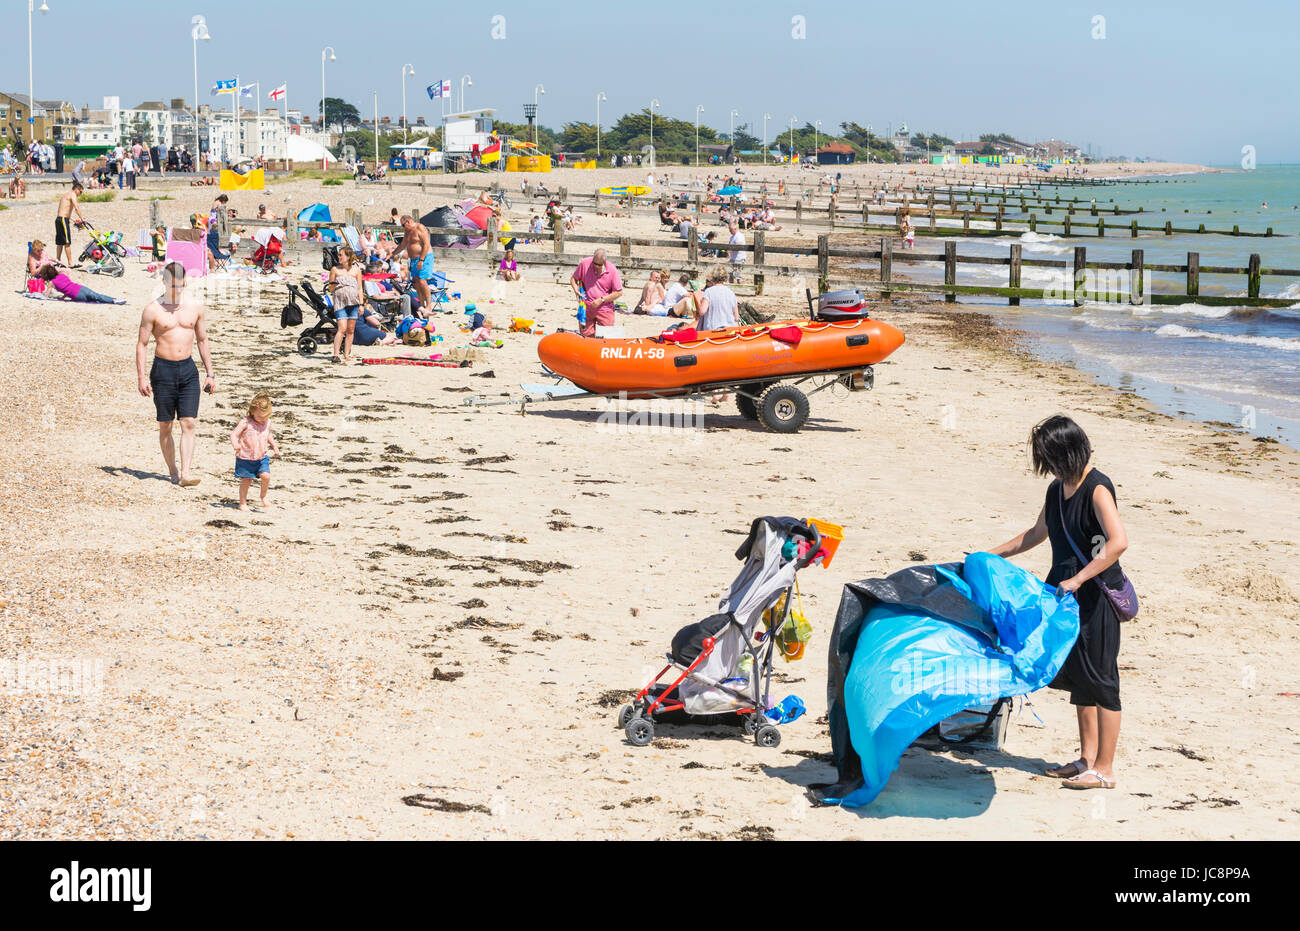 People having fun in the sun on a beach in the Summer of June 2017 in Littlehampton, West Sussex, England, UK. - Stock Image